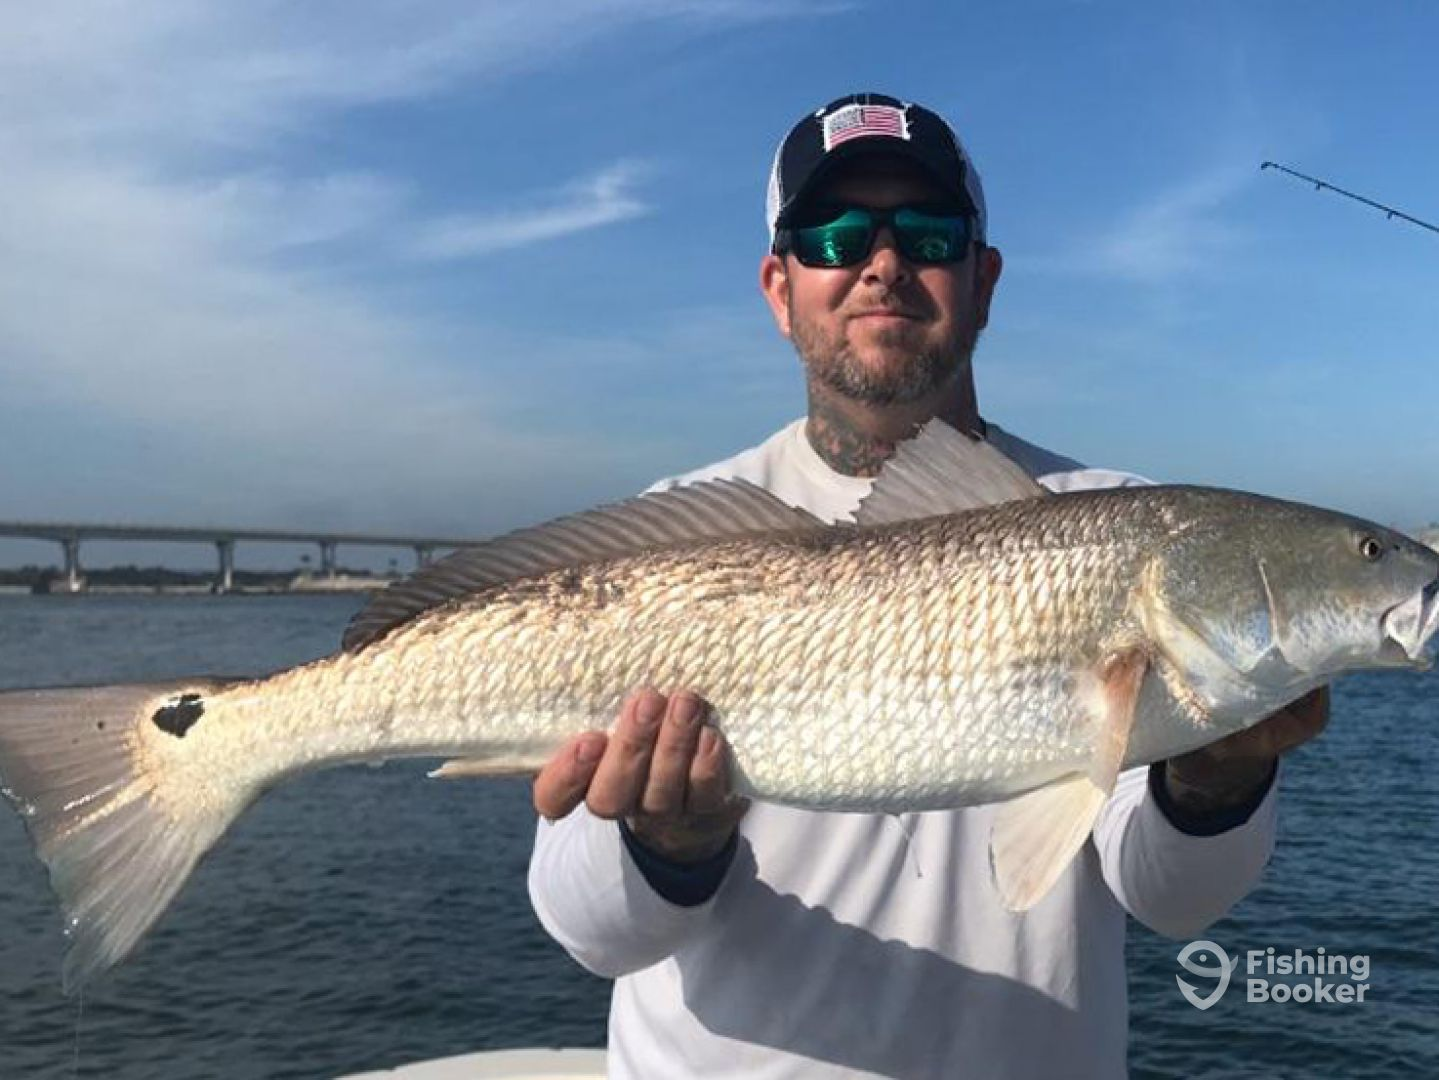 Freedom runner fishing charters 22 39 melbourne fl for Melbourne fl fishing charters